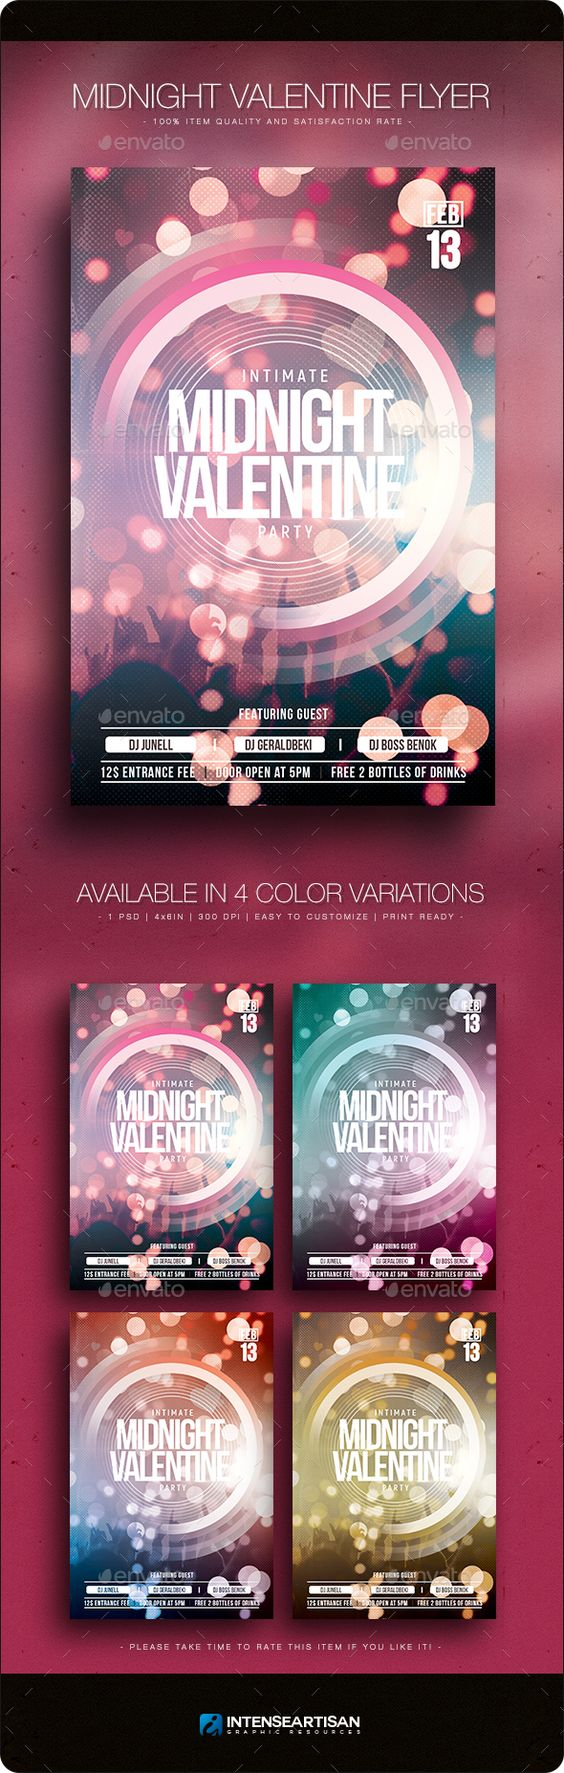 Midnight Valentine Flyer Template Pinterest Valentine S Day